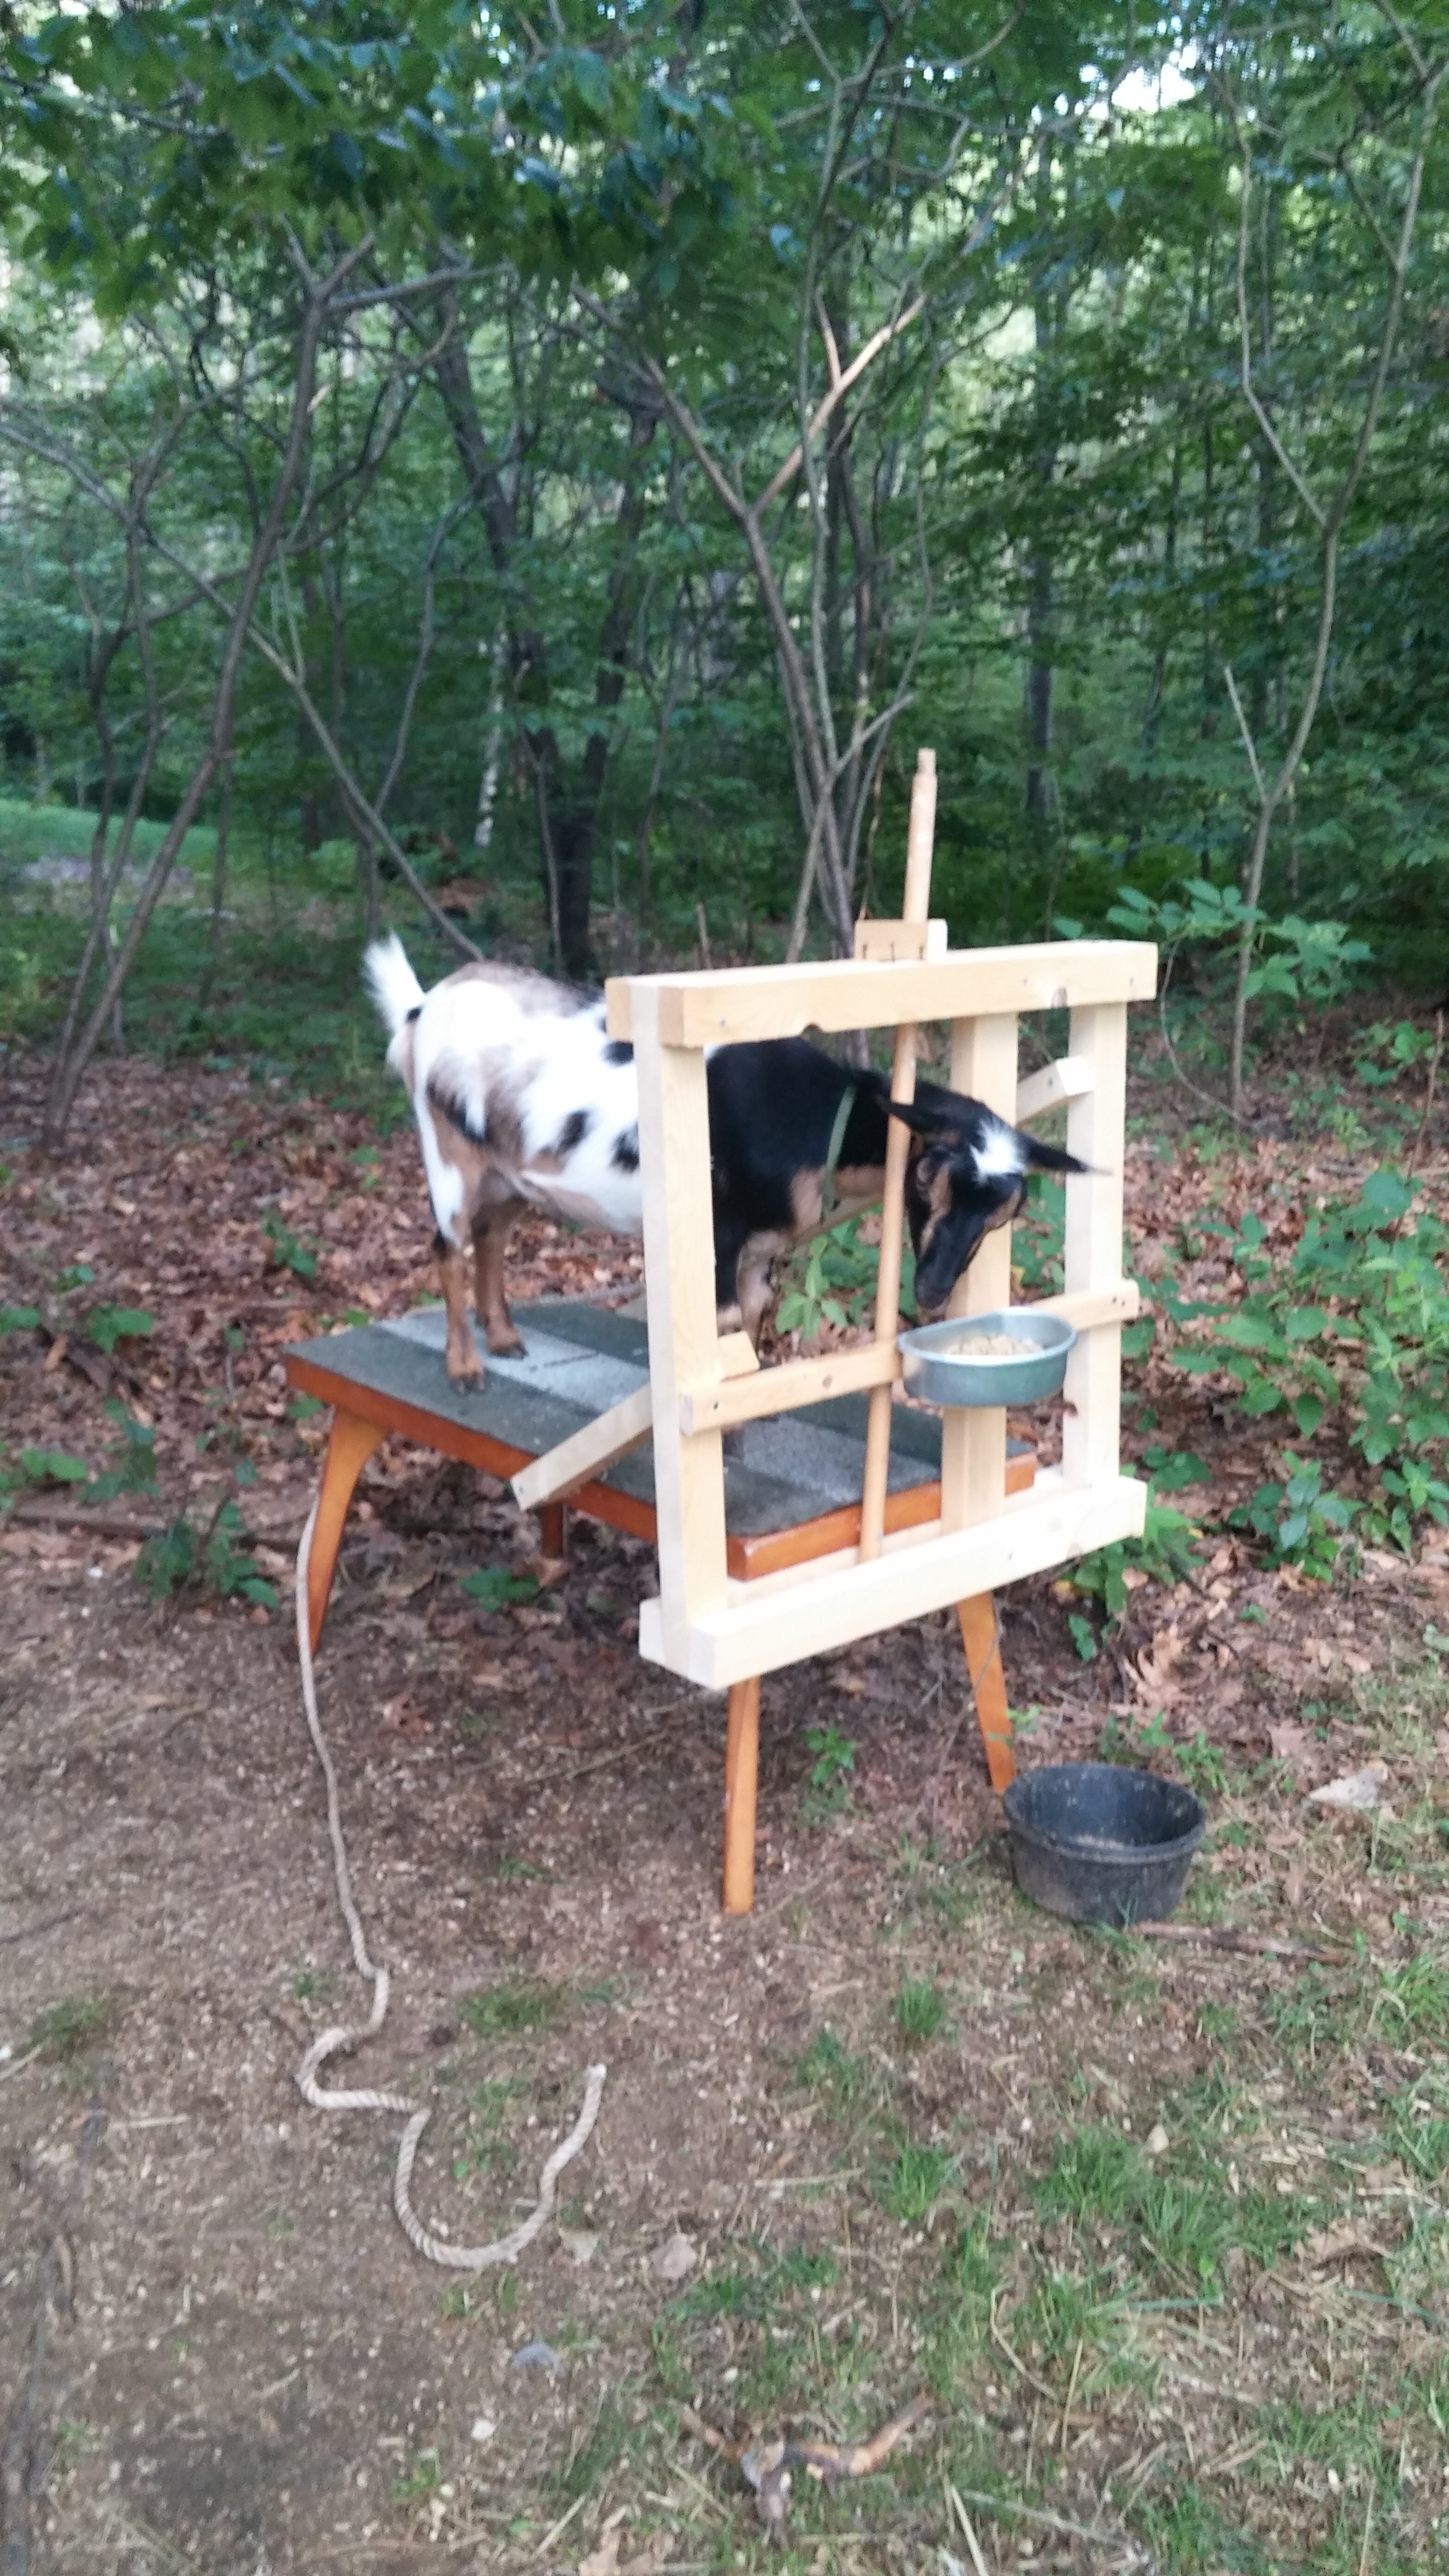 Honeycomb testing out my DIY milking stand last summer.